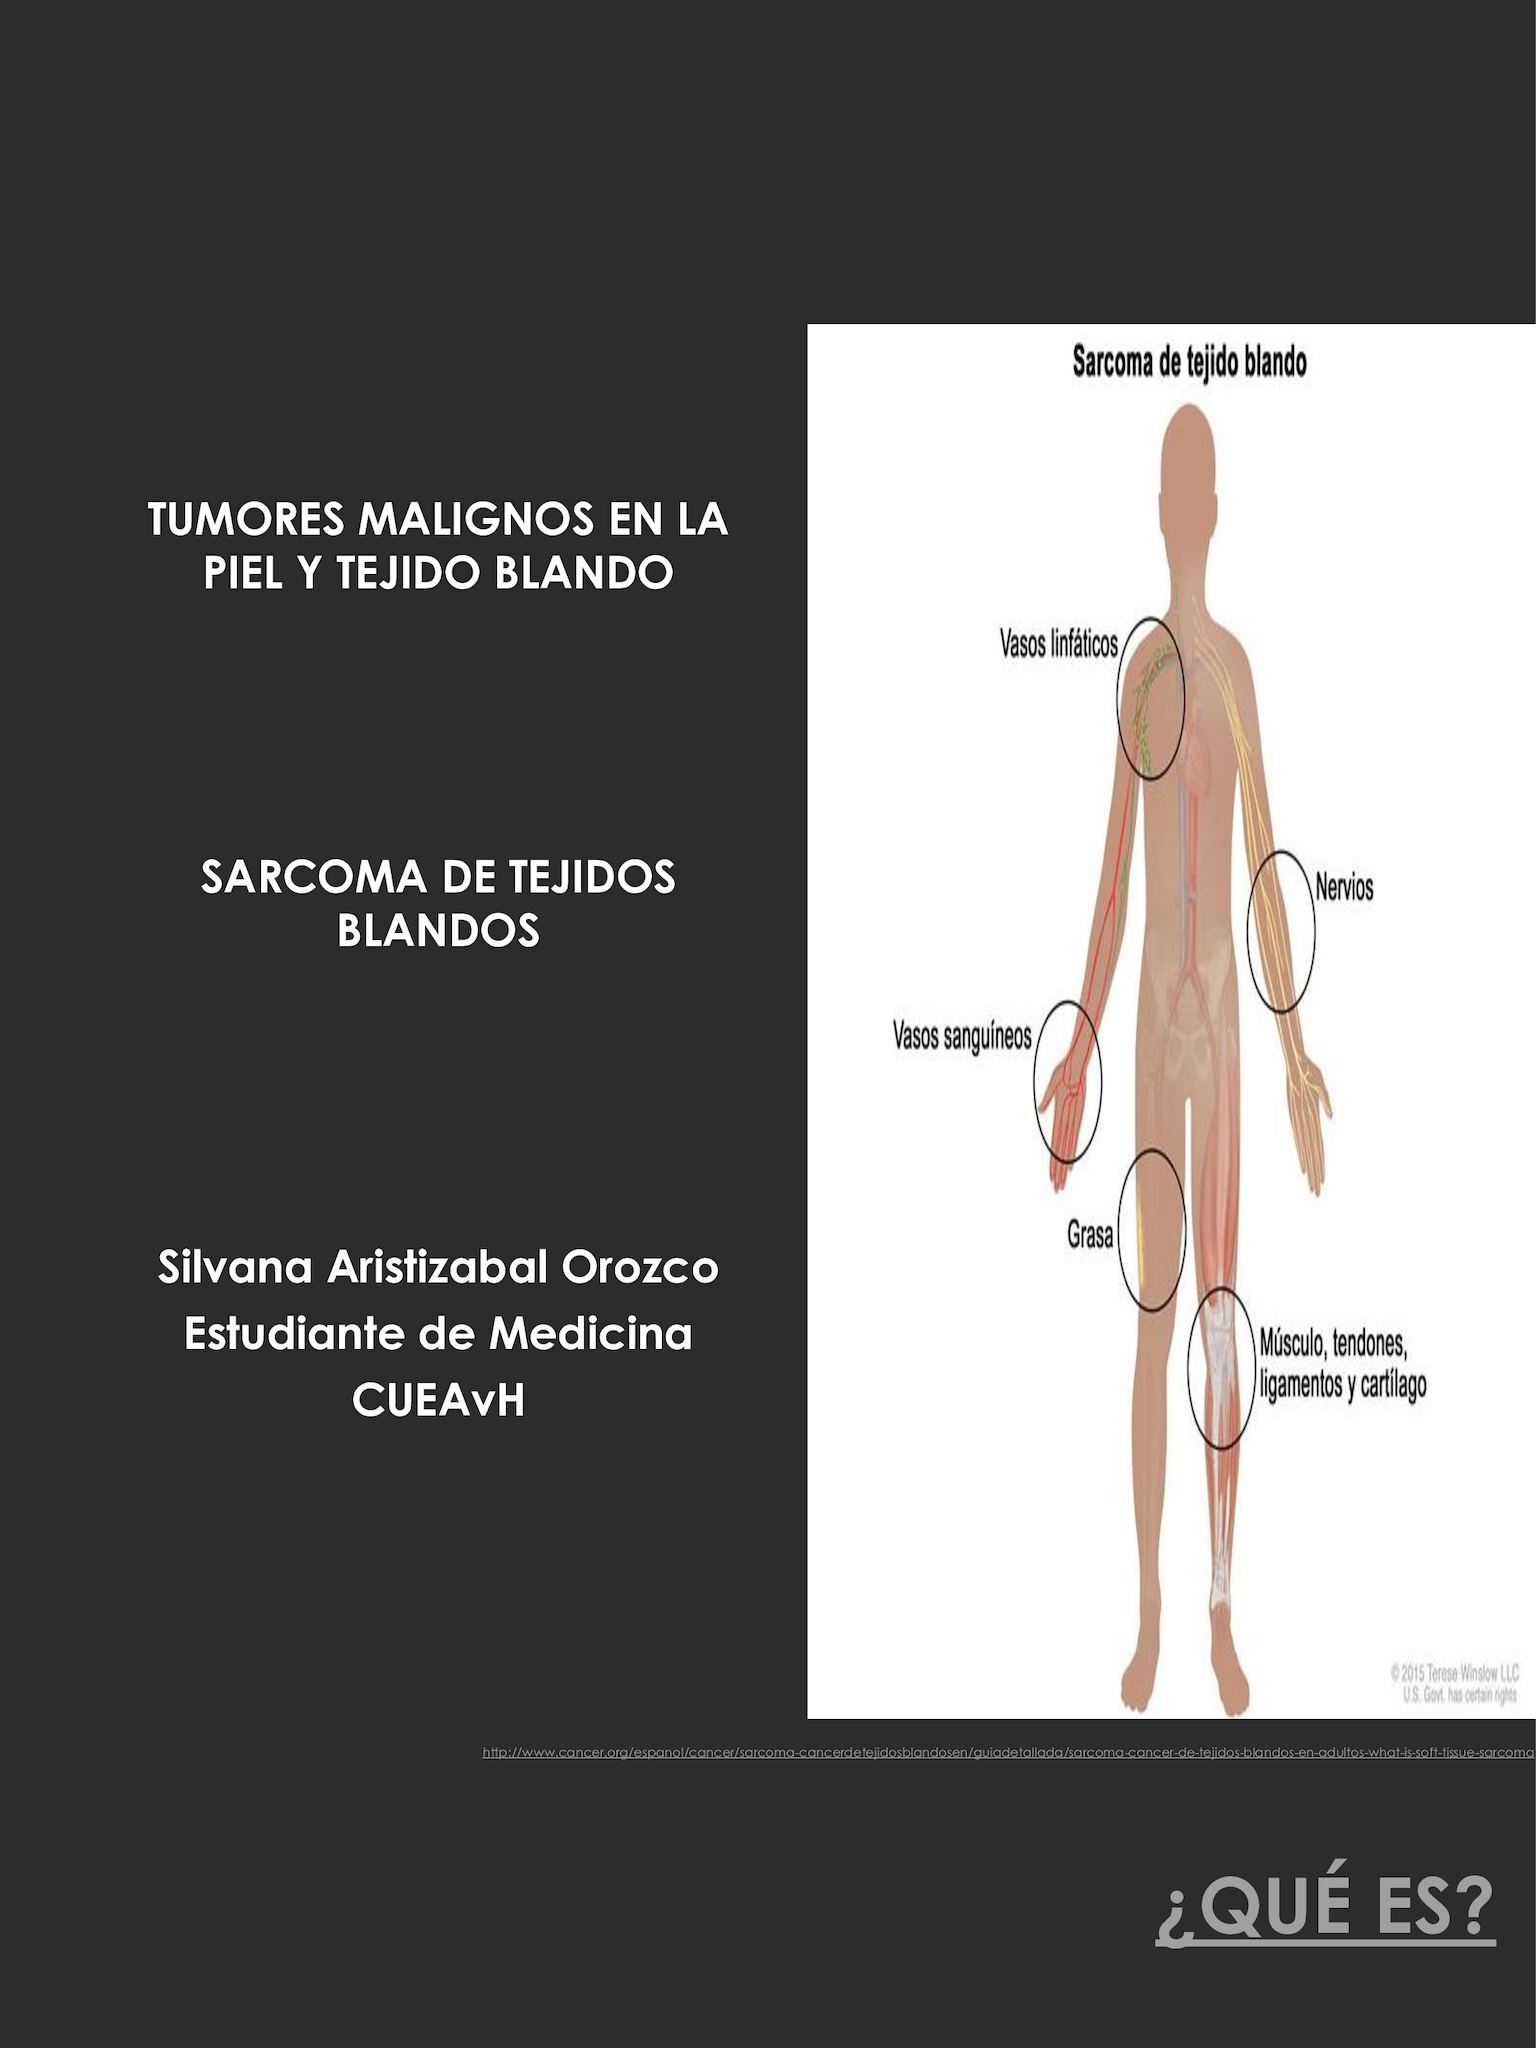 cancer sarcoma tejido blando hepatic cancer resection